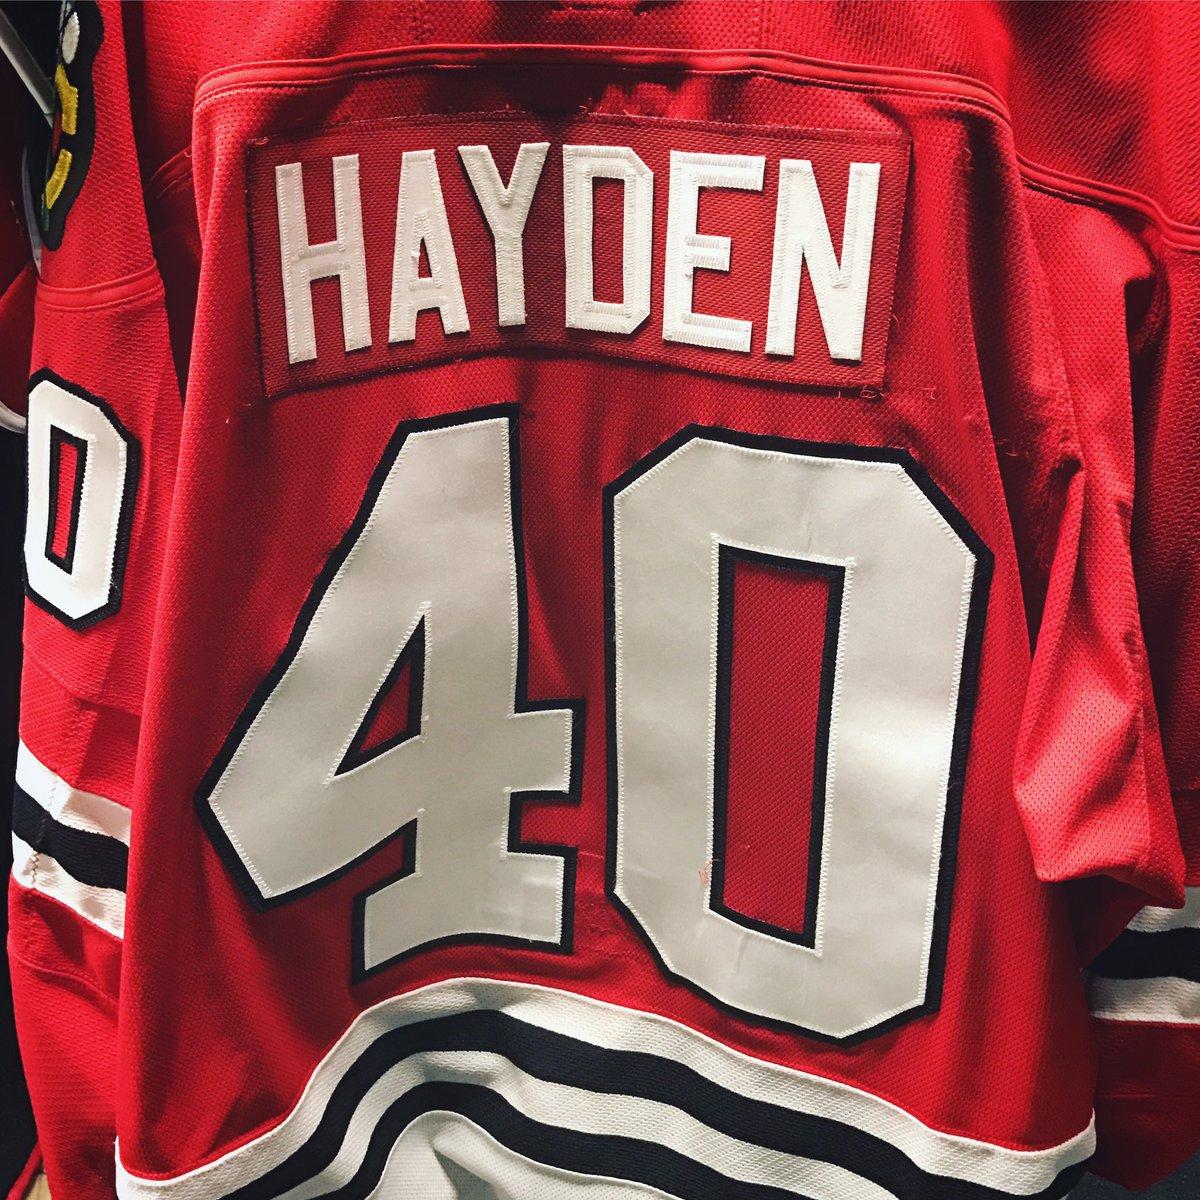 100% authentic 2a4af 58467 Chicago Blackhawks on Twitter: